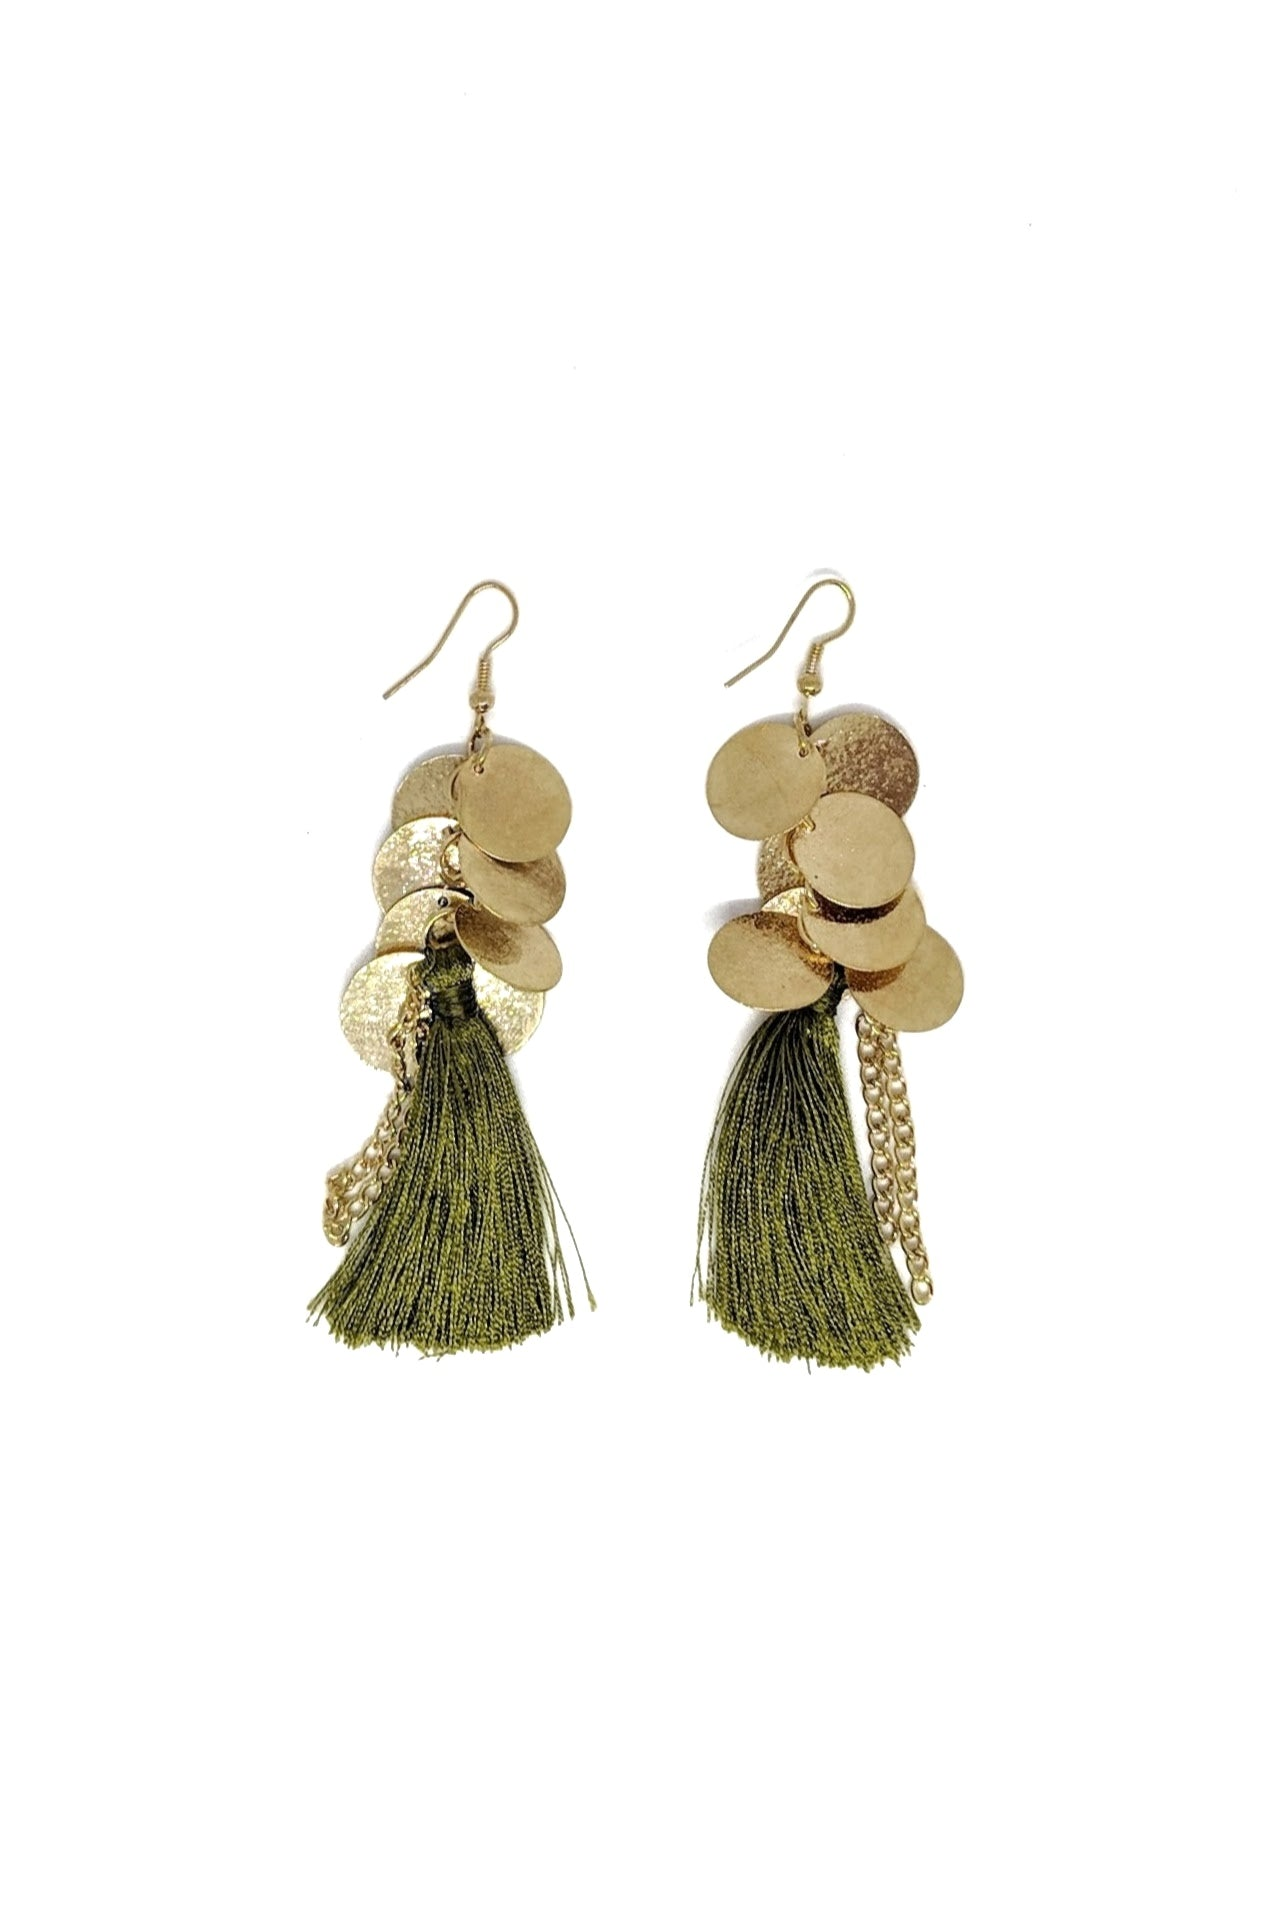 GOLD DISCS TASSLE EARRINGS